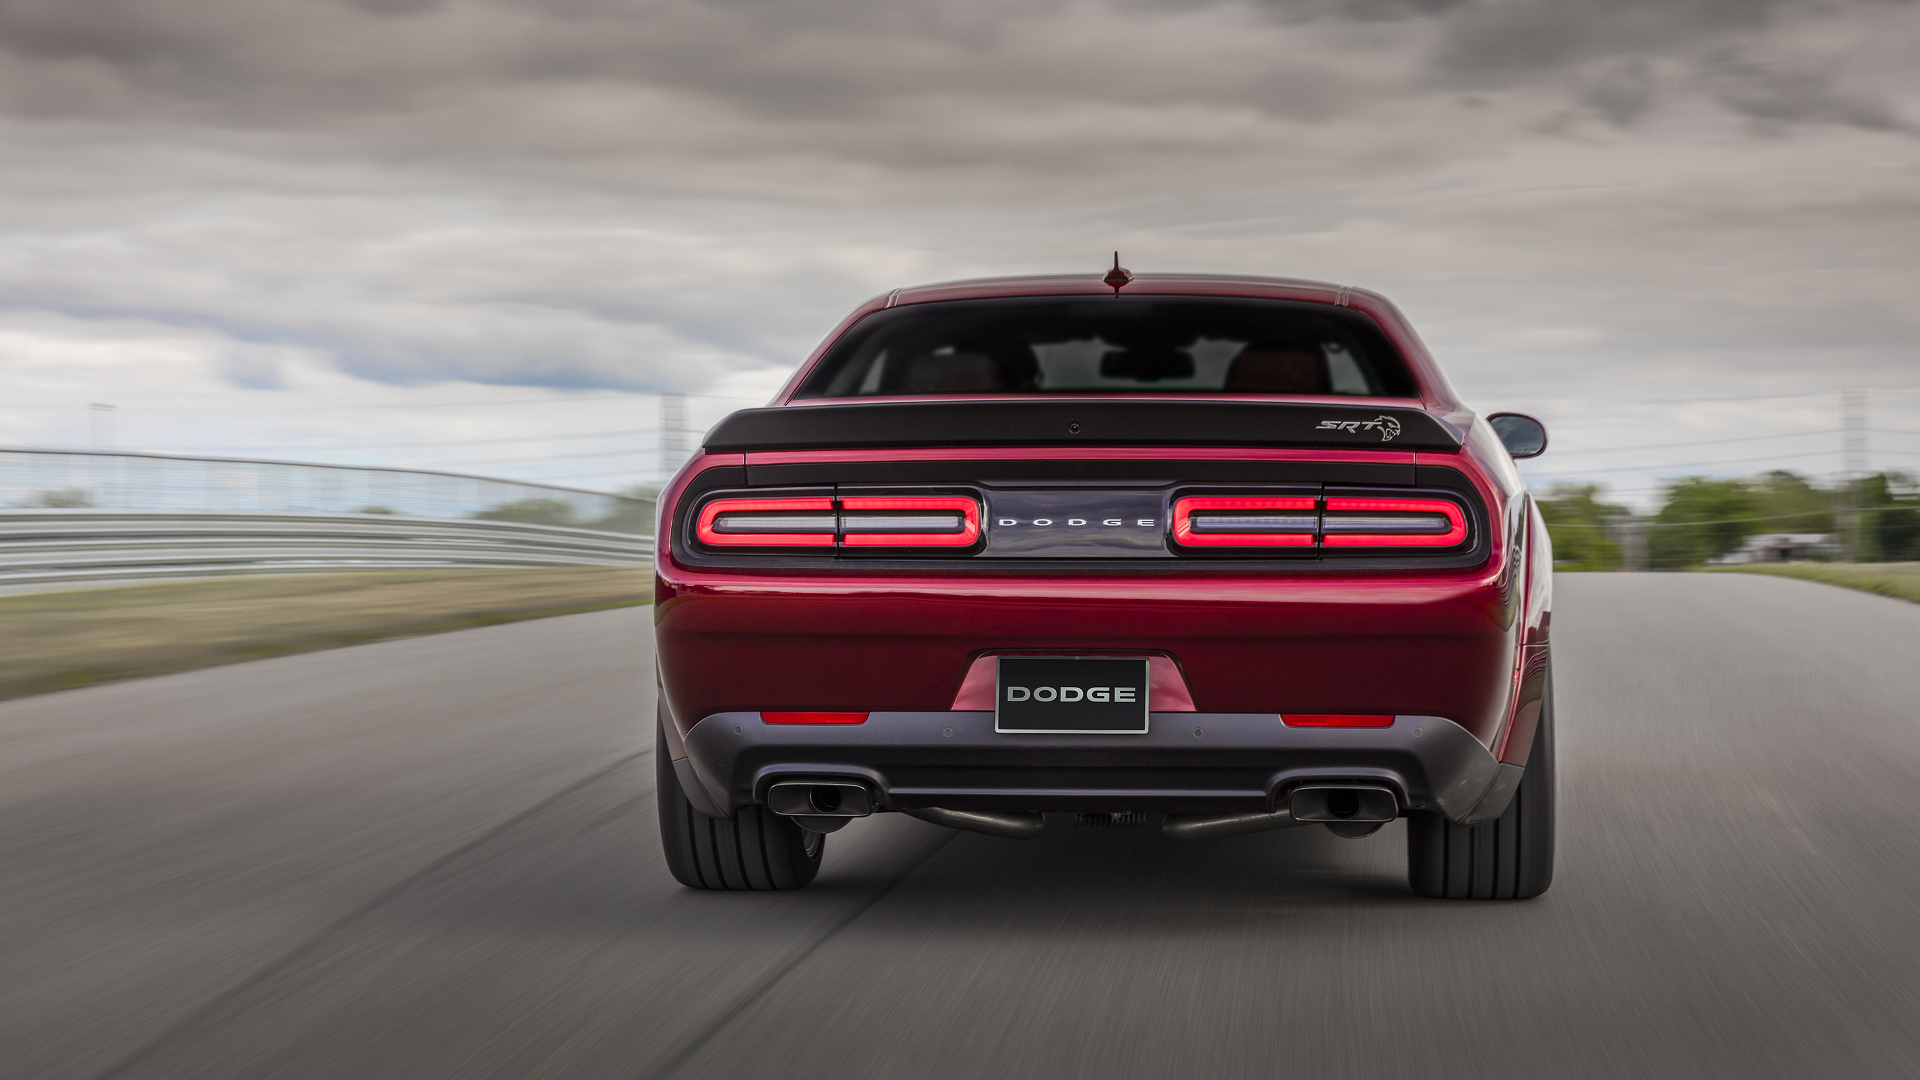 Srt Dodge Challenger >> The 2018 Dodge Challenger SRT Hellcat Widebody Is a Cheaper Dodge Demon - The Drive